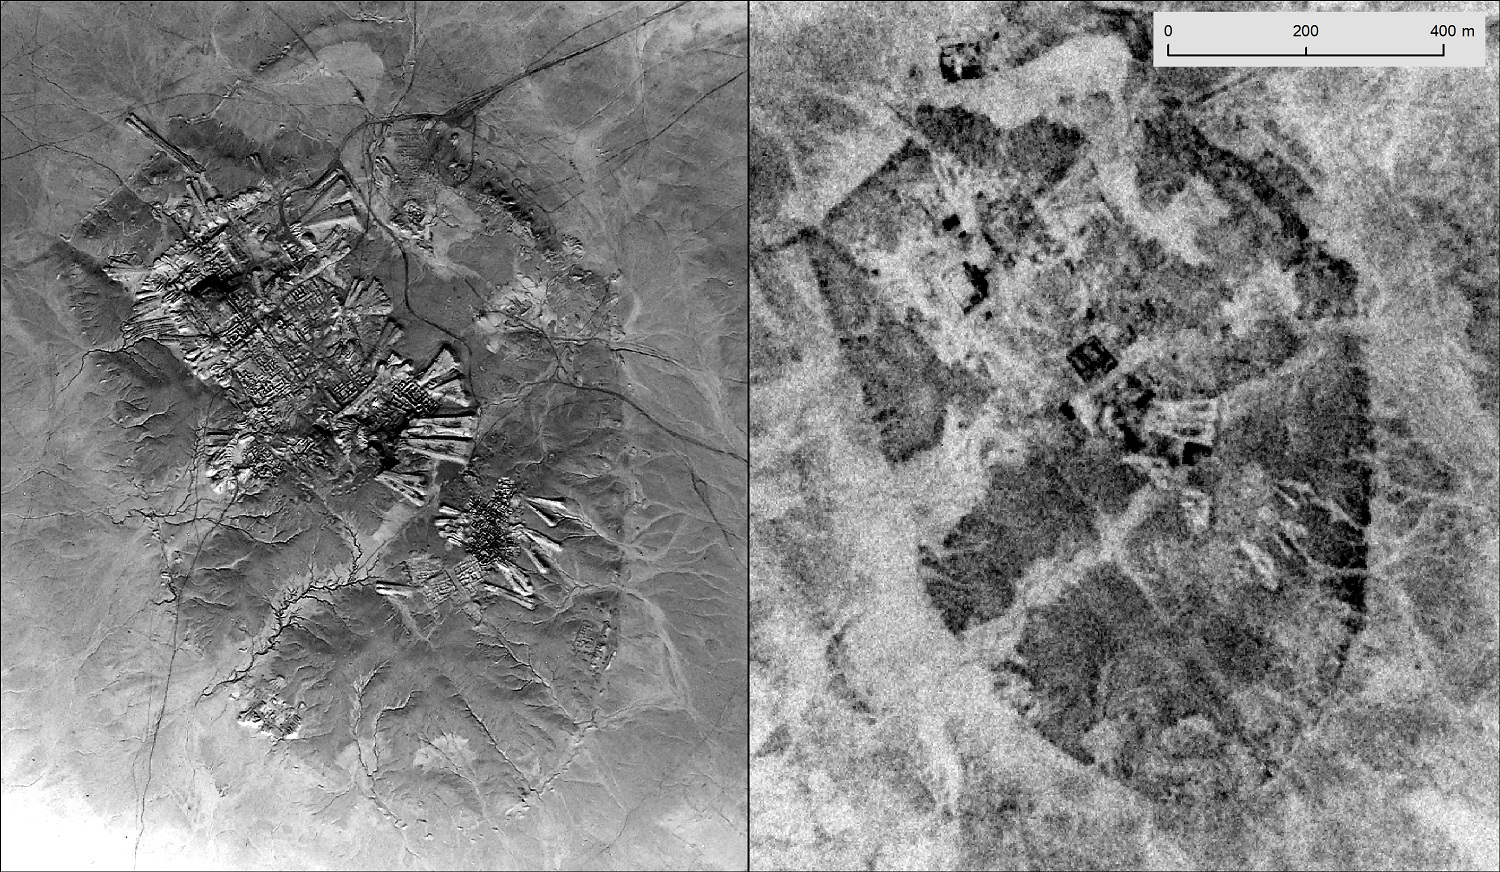 Ur Iraq U2 1959 left CORONA satellite 1969 right